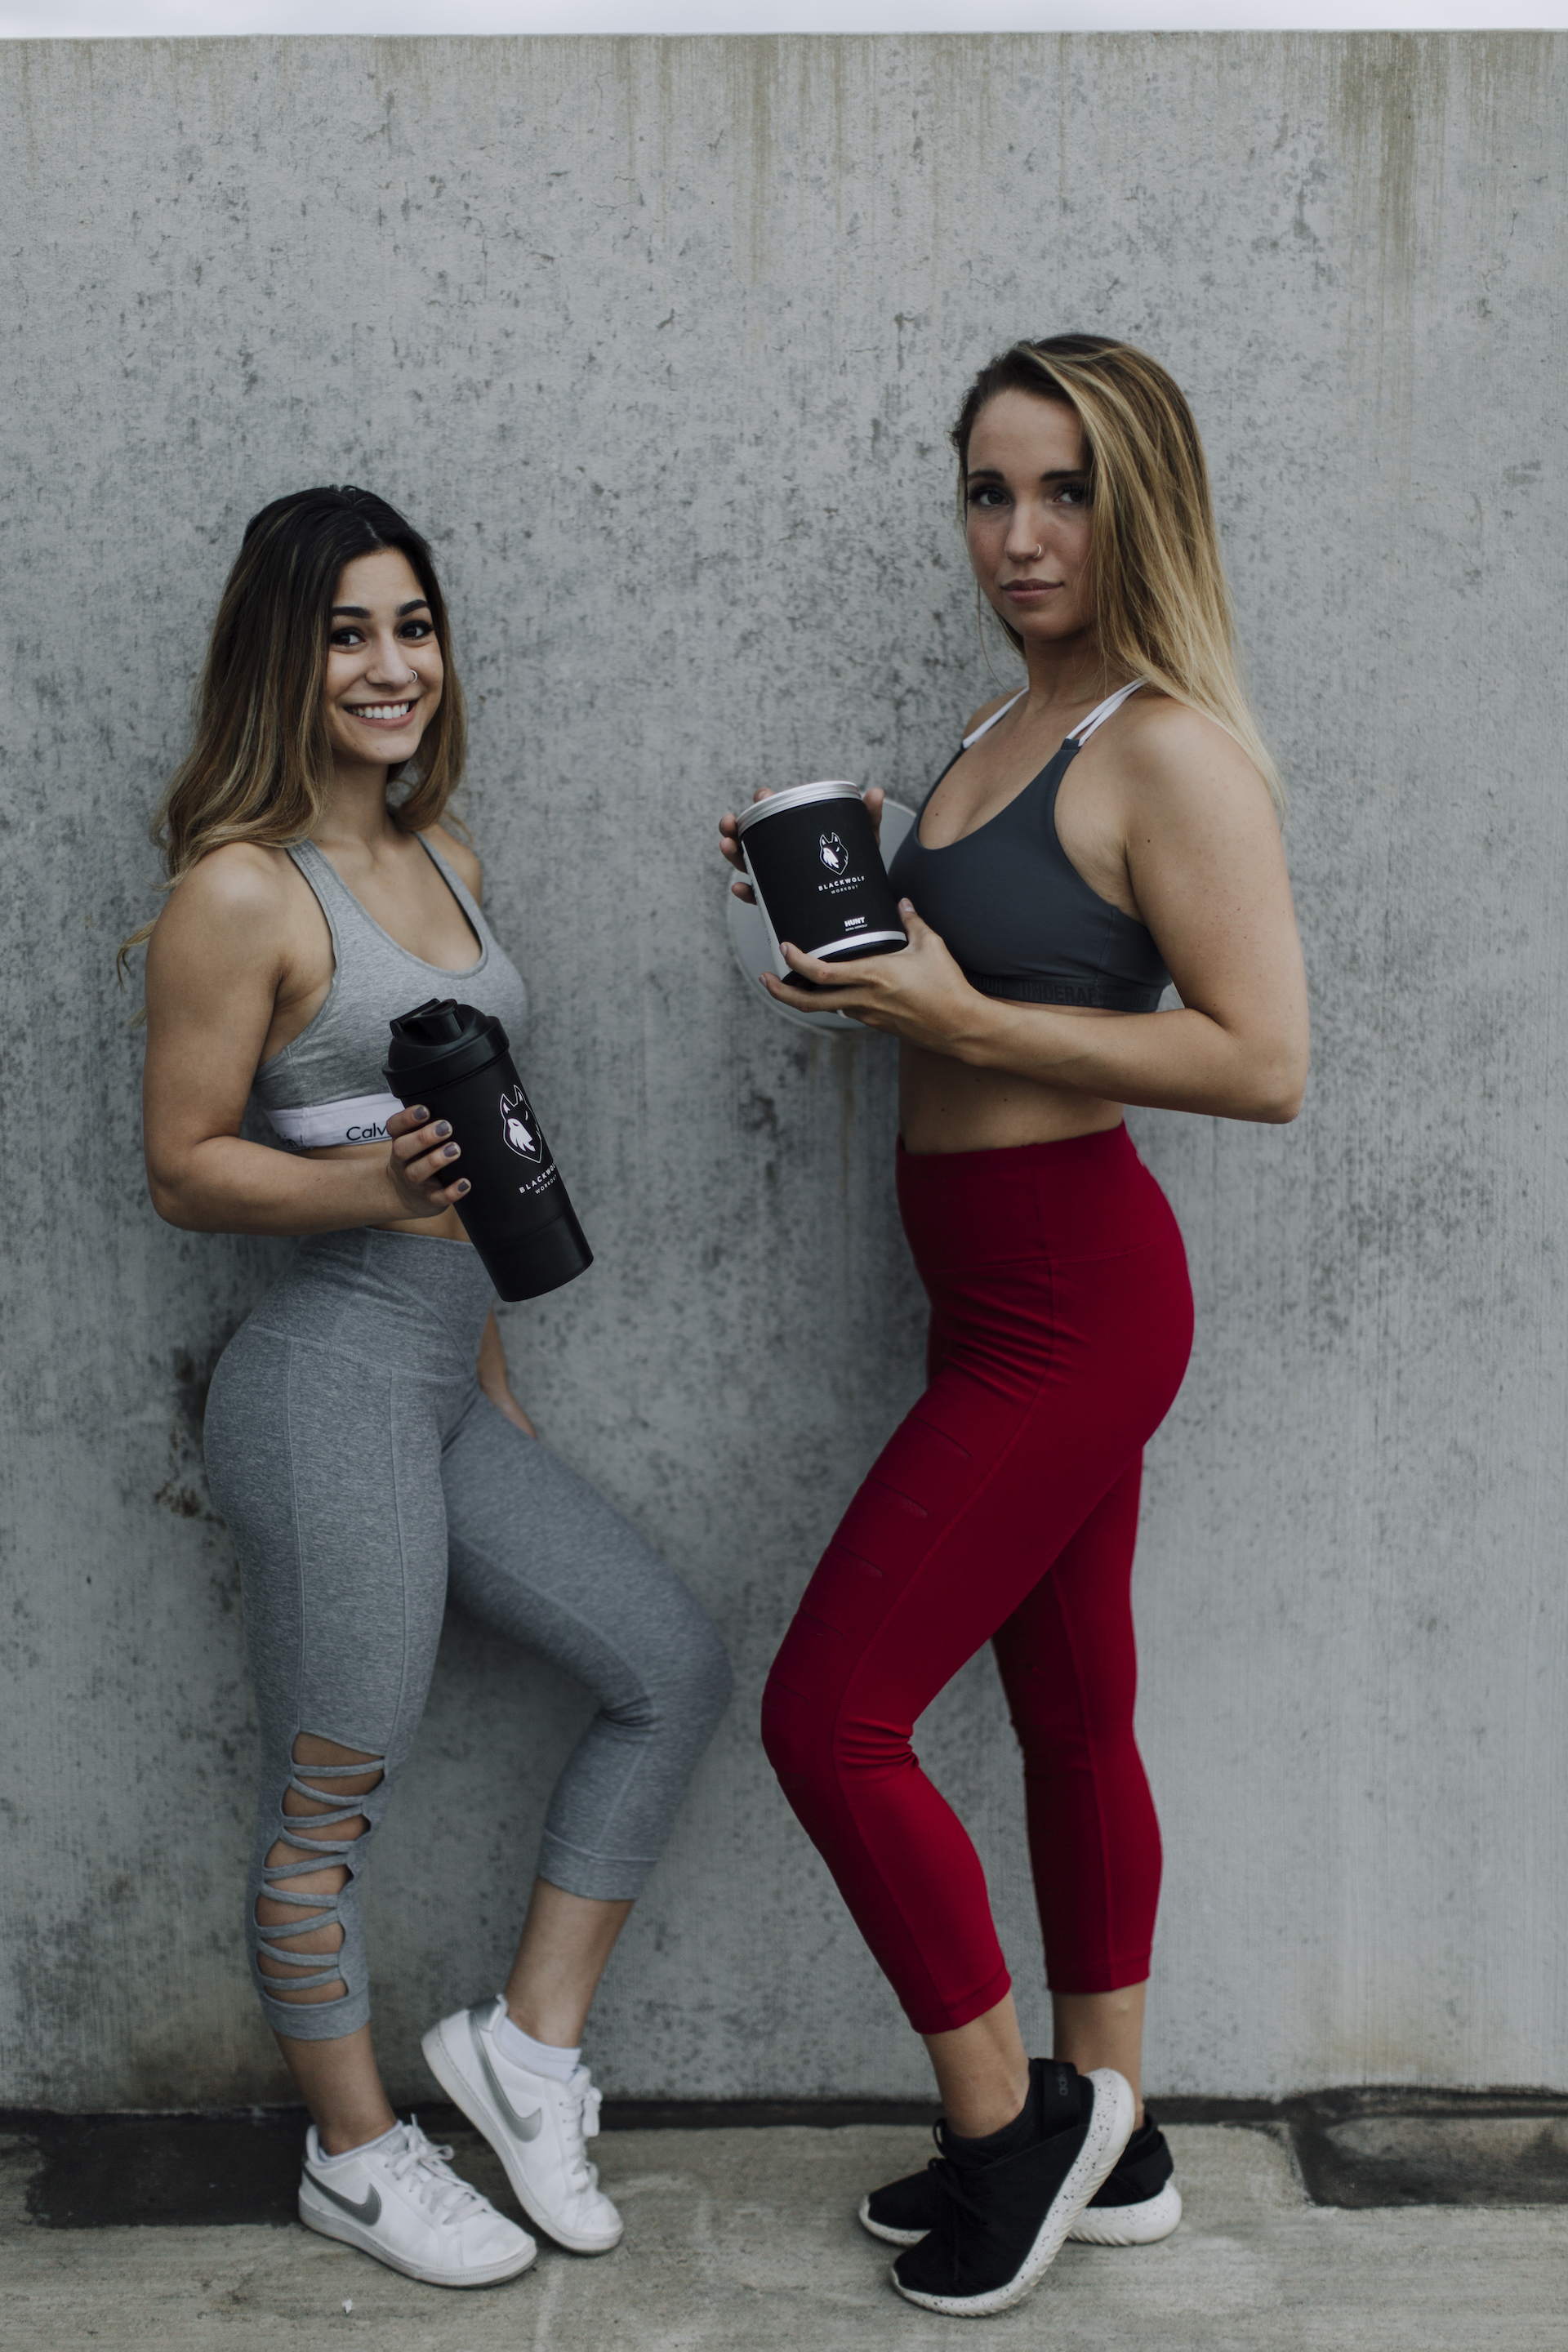 Blackwolf The Best Workout Body Building Supplement Free Delivery